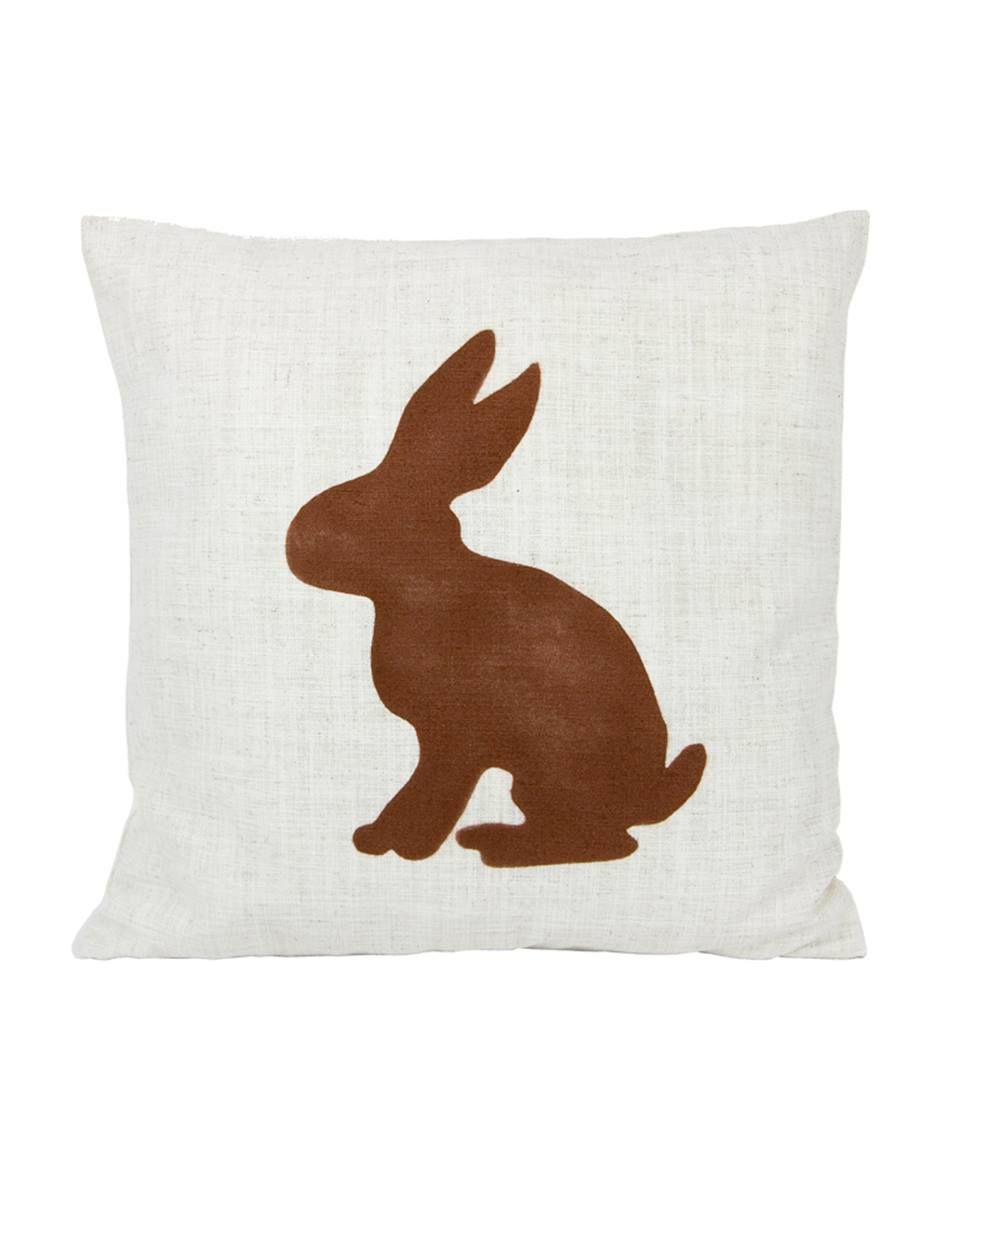 Cushion deer a linen fabric with deer print removable cushion cover